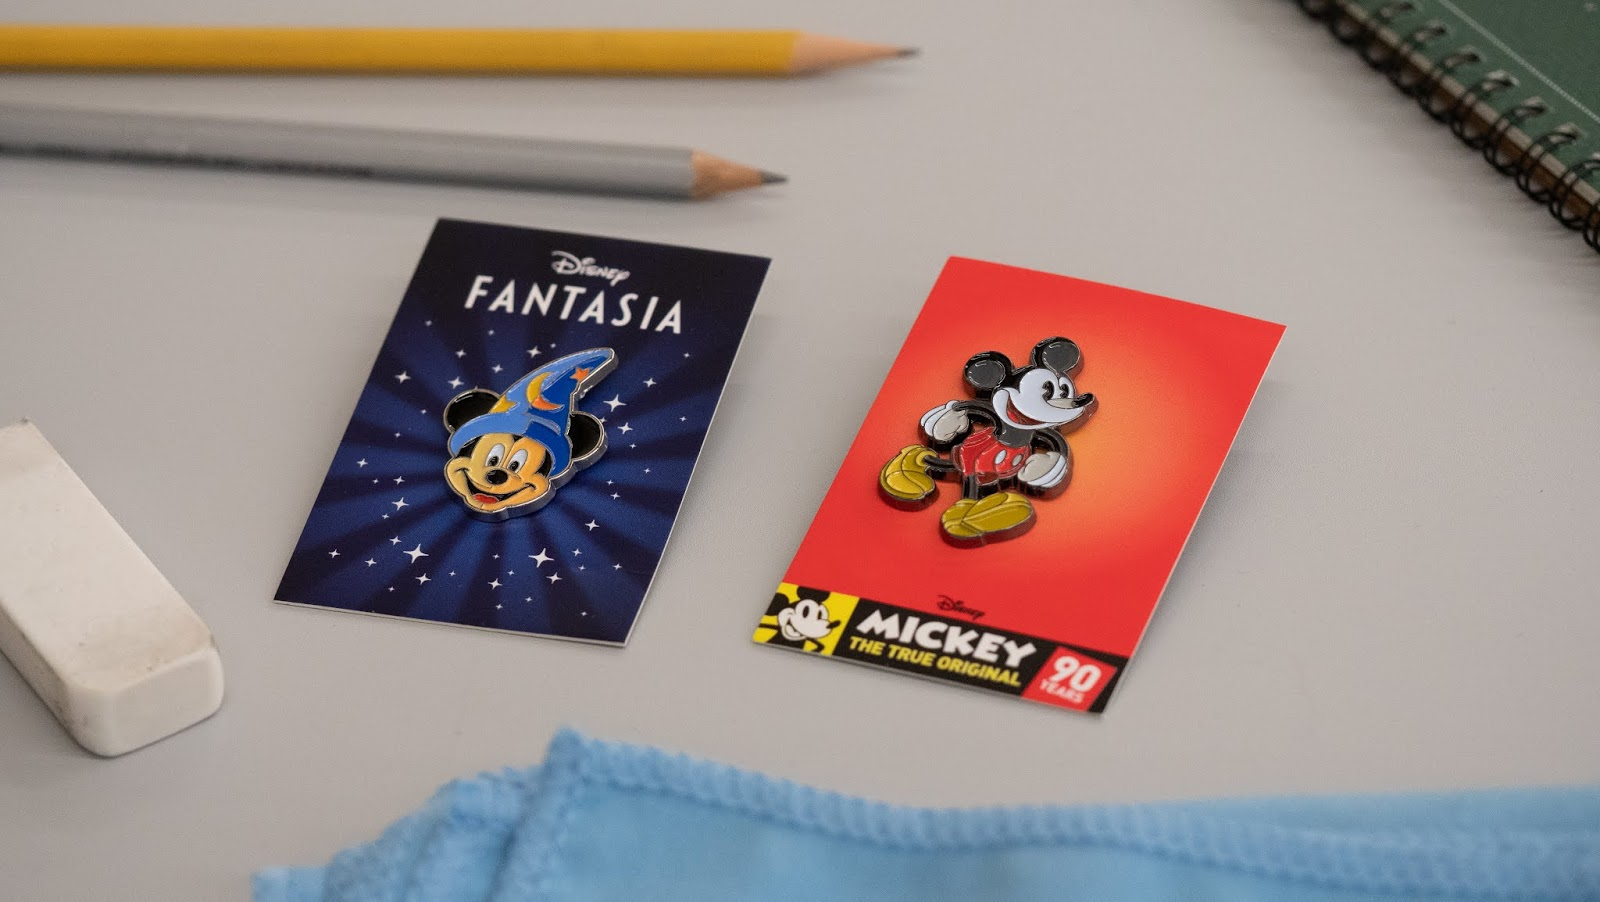 d9dd461312 Mondo is proud to present an artistic line of Disney enamel pins as part of  an ongoing series. There s no better way to celebrate this exciting  assemblage ...